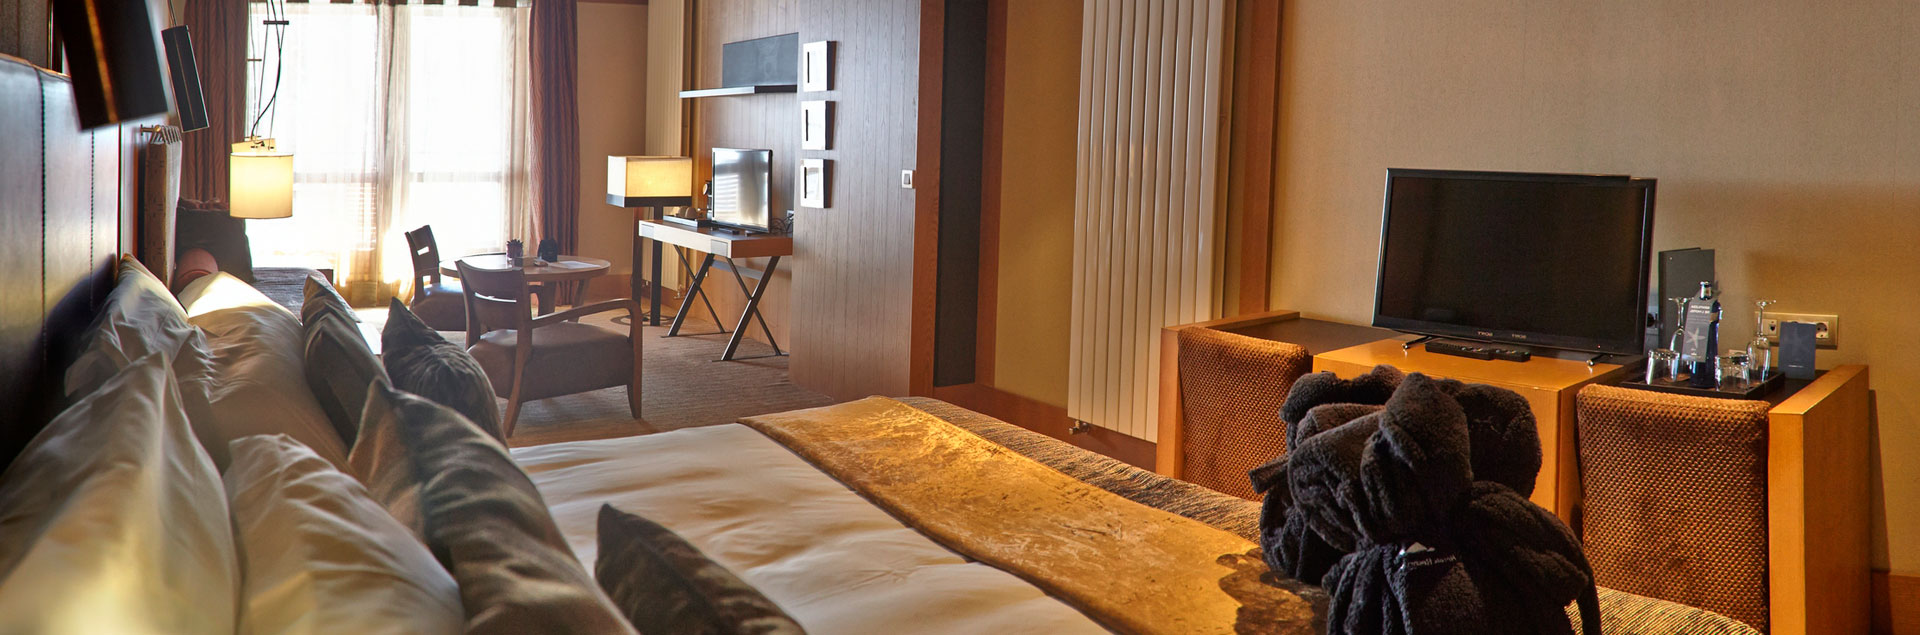 chambre du luxe leading hotel Soldeu Andorre